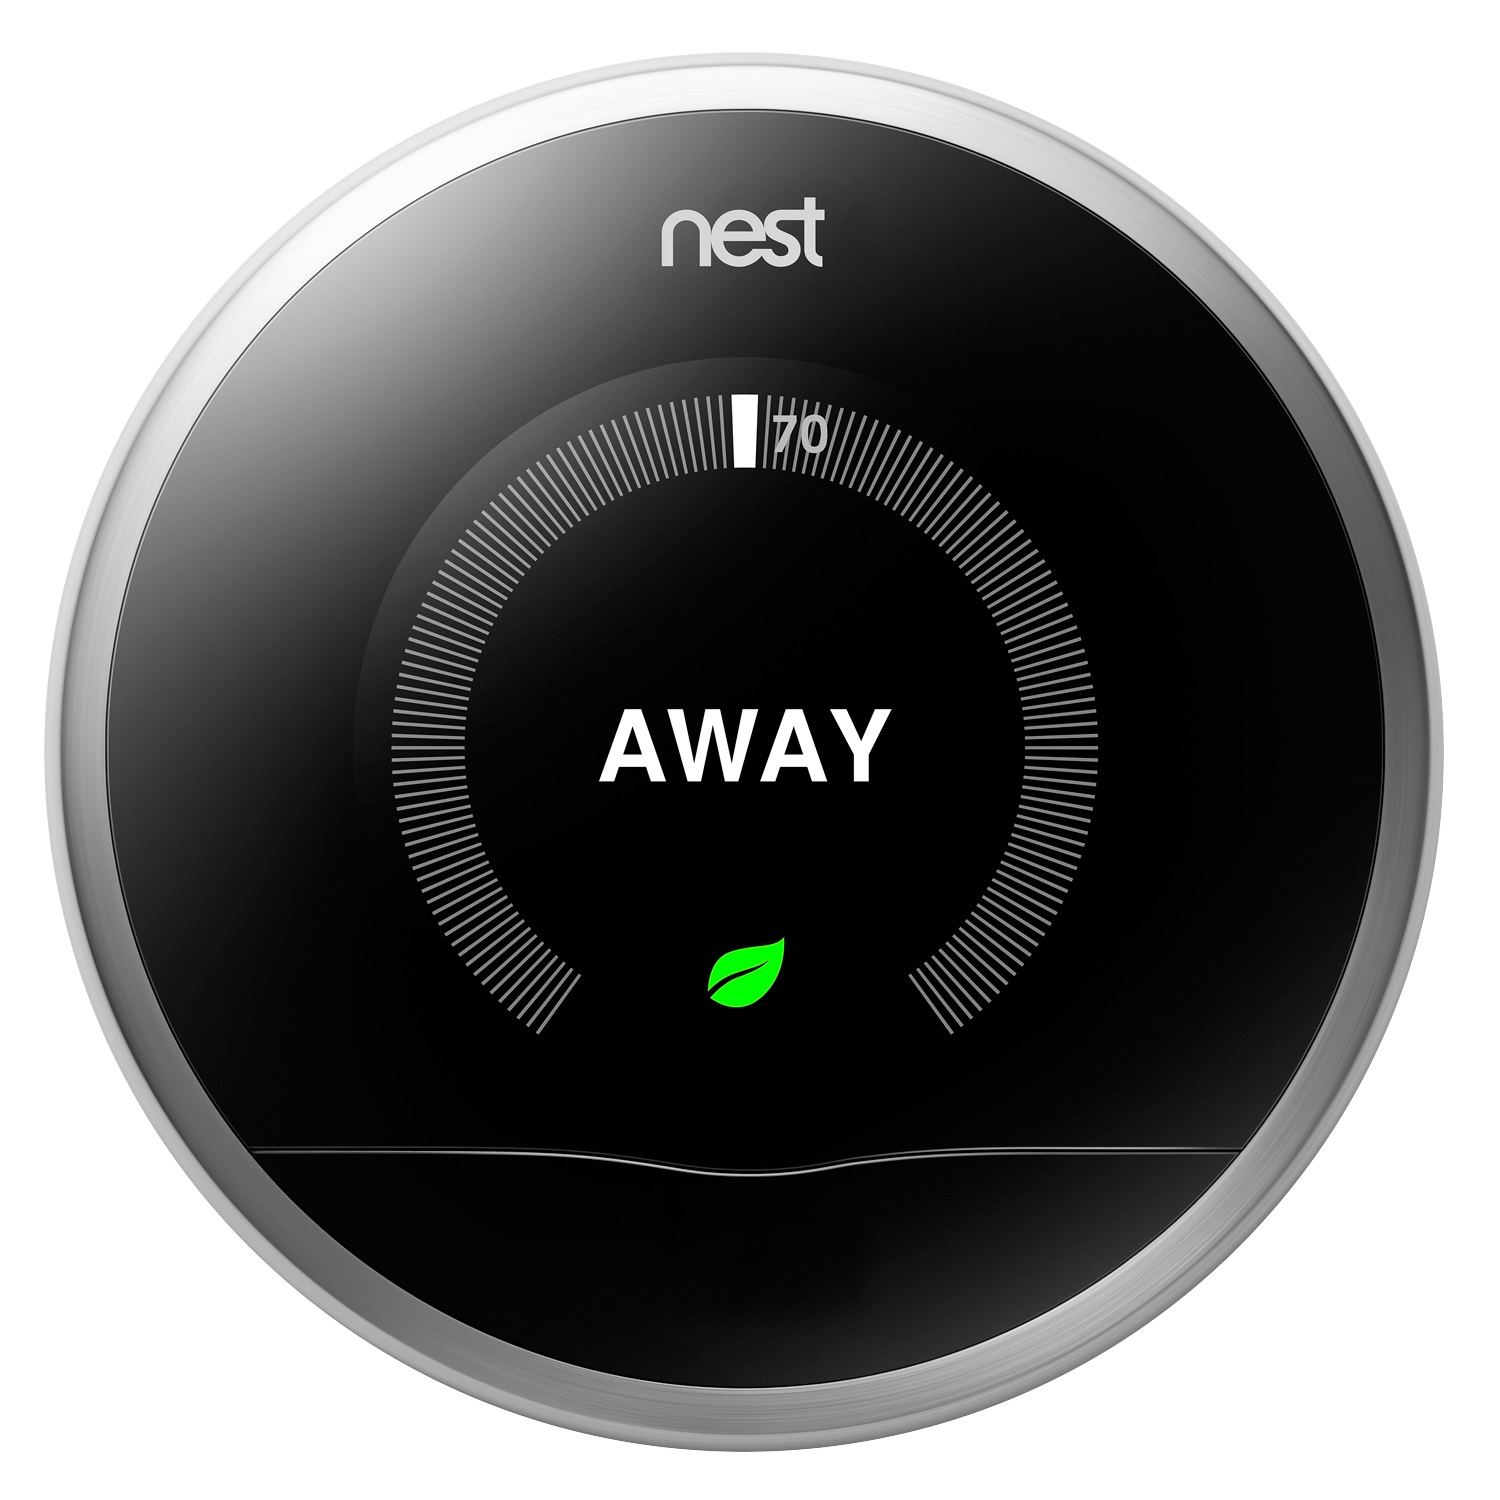 nest away mode